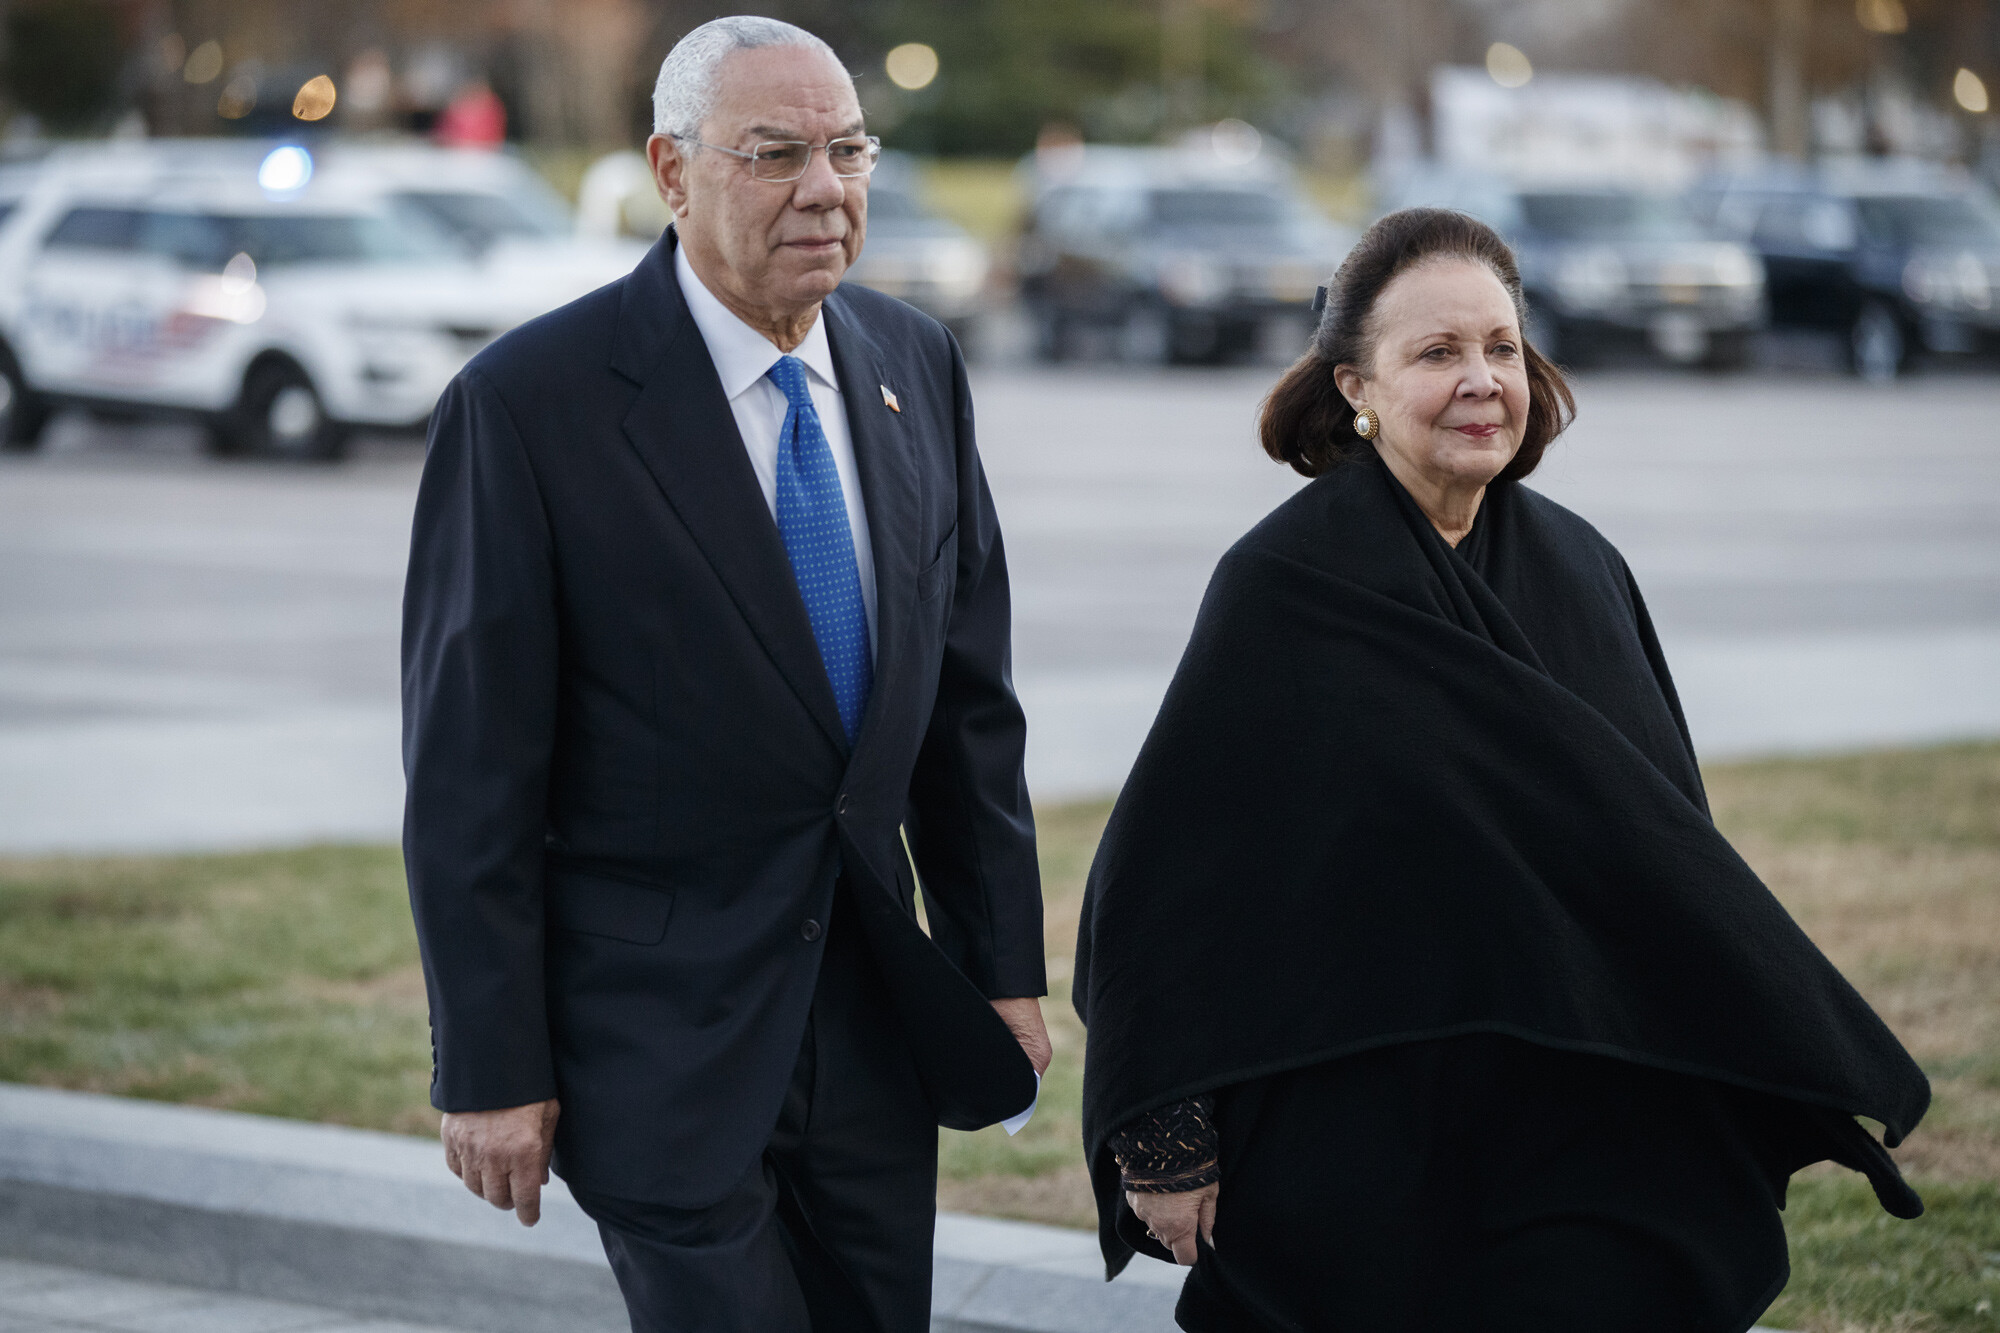 Colin Powell's love story started with an accidental date — and lasted six decades